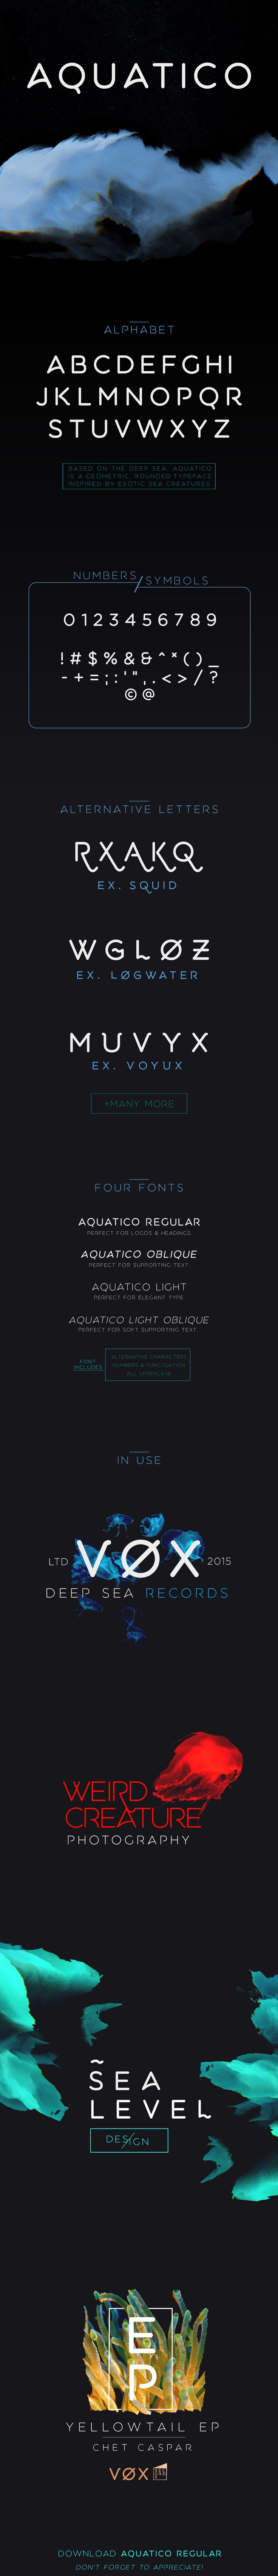 Aquatico - Free Typeface on Typography Served  #unique, #clean #easytorecognize